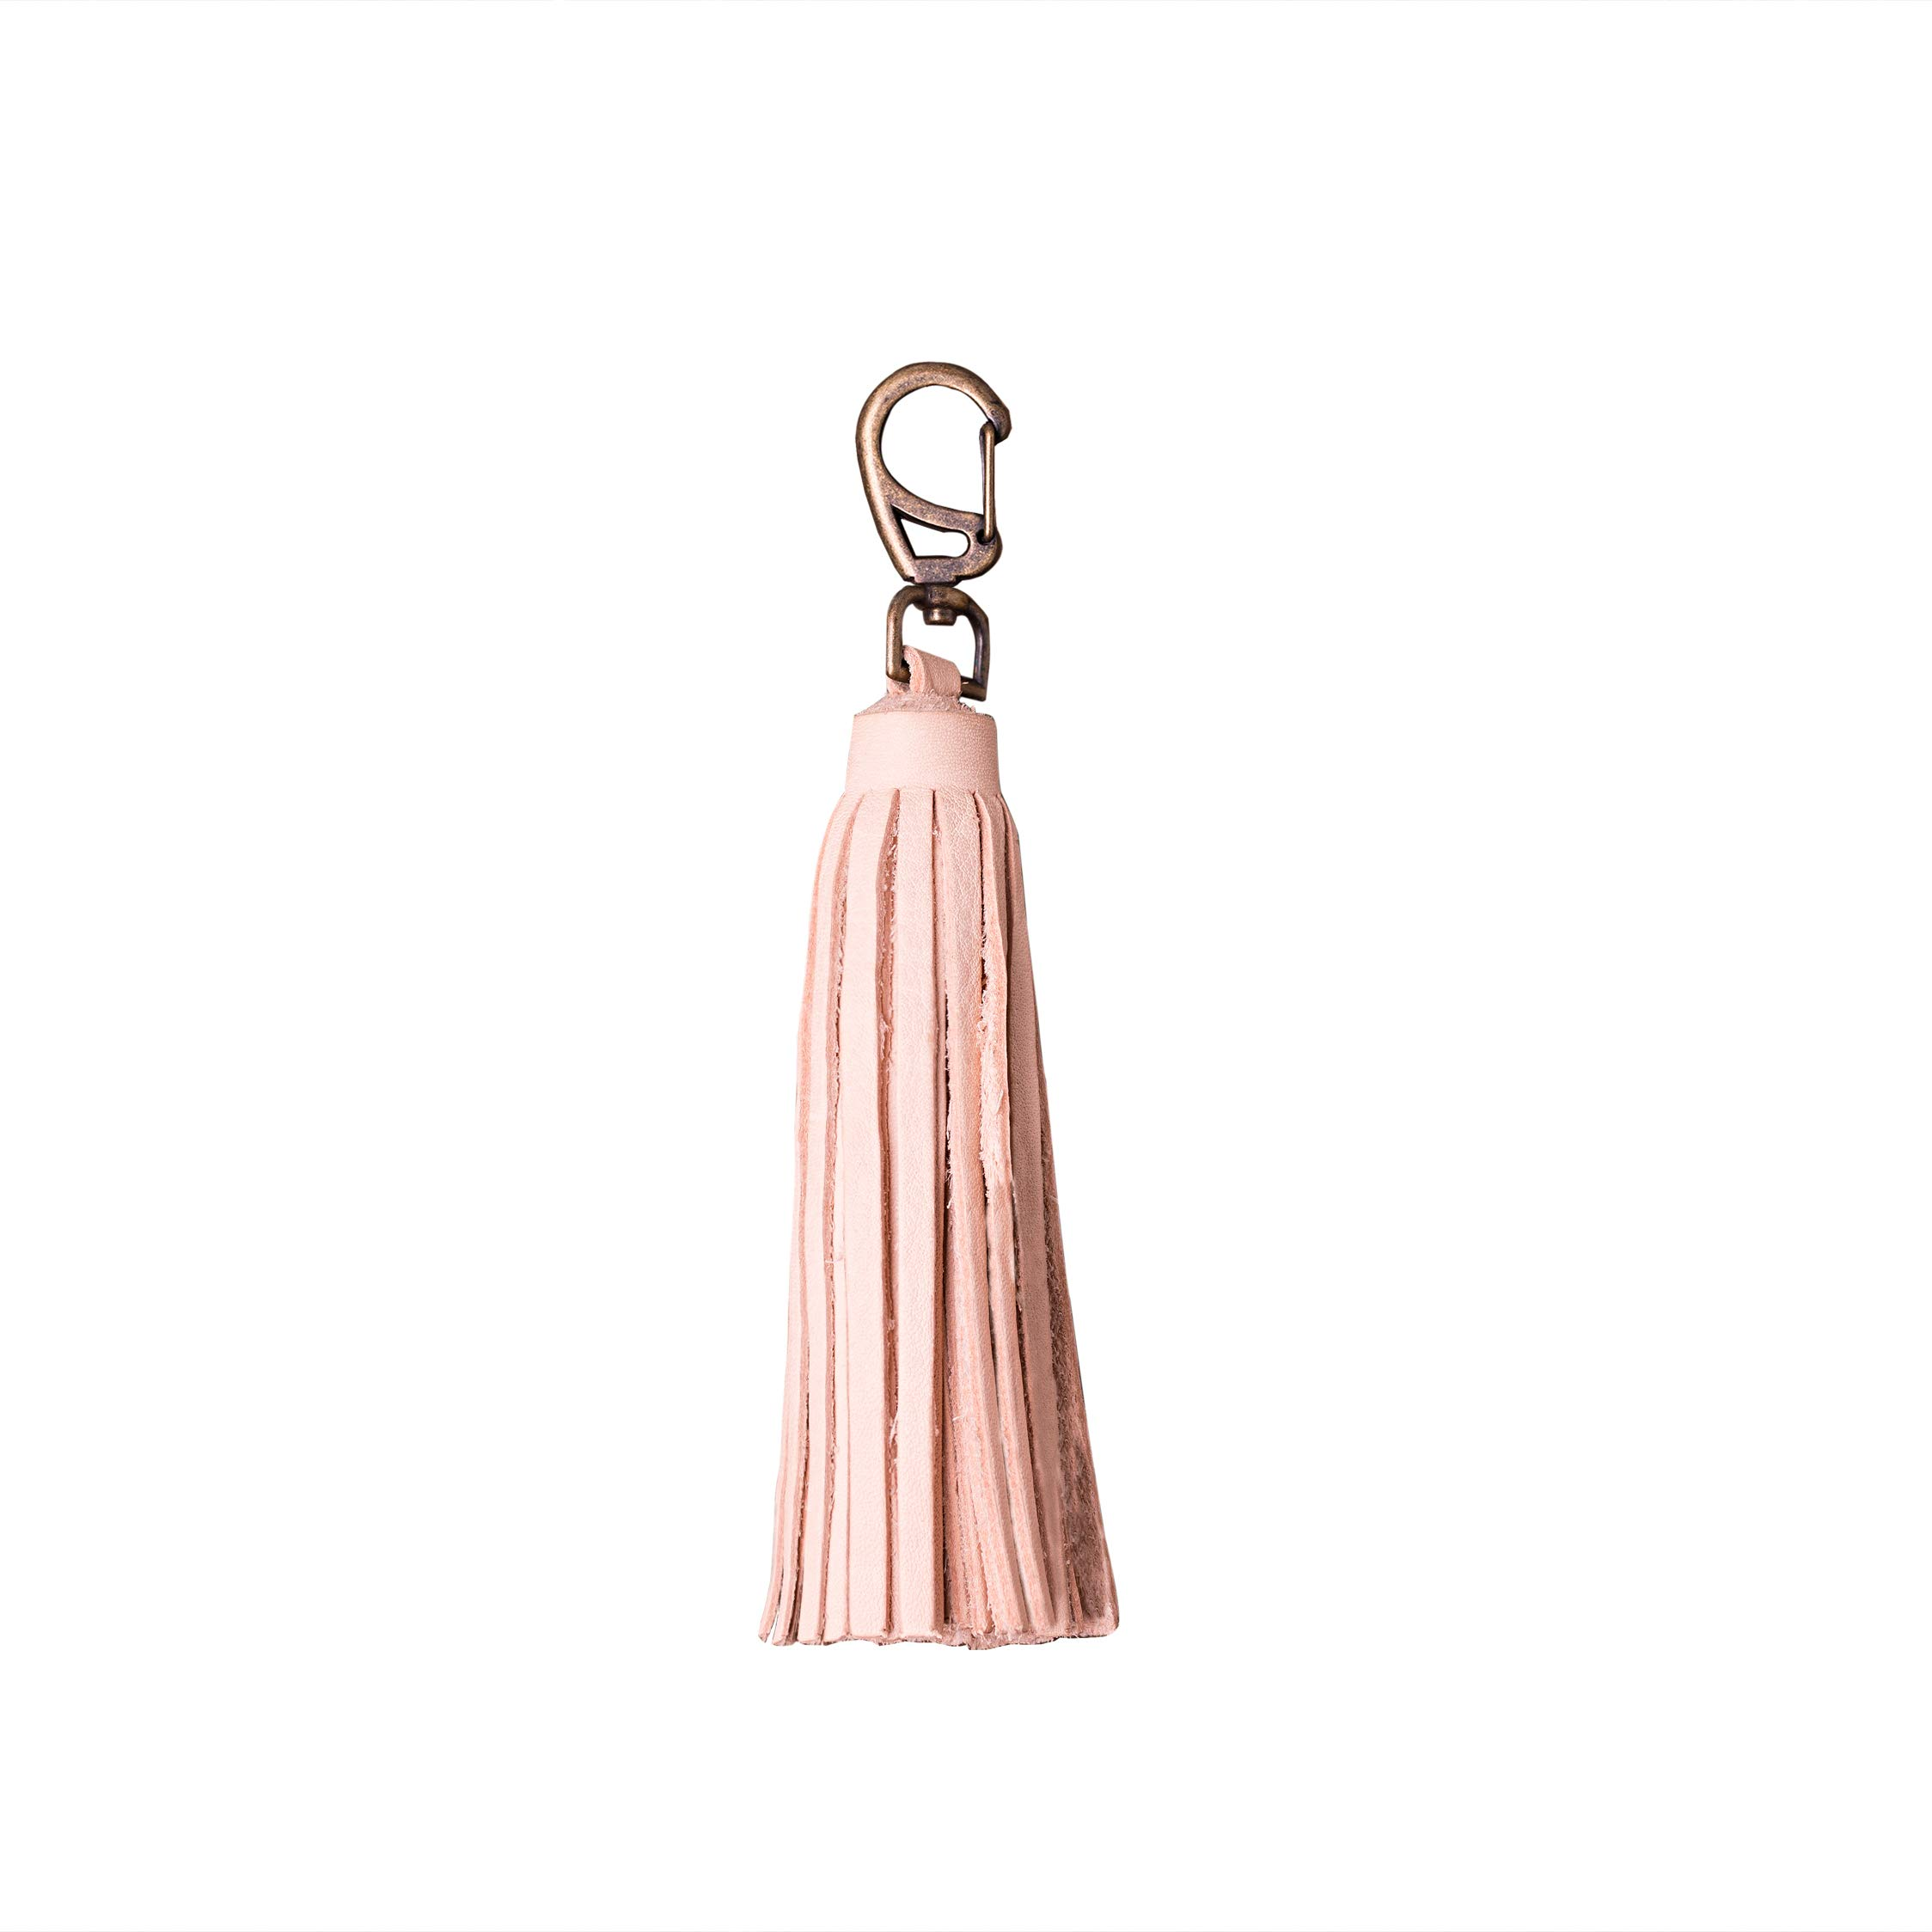 Love 41 Clip on Leather Tassel Includes 41 Year Warranty by love (Image #1)